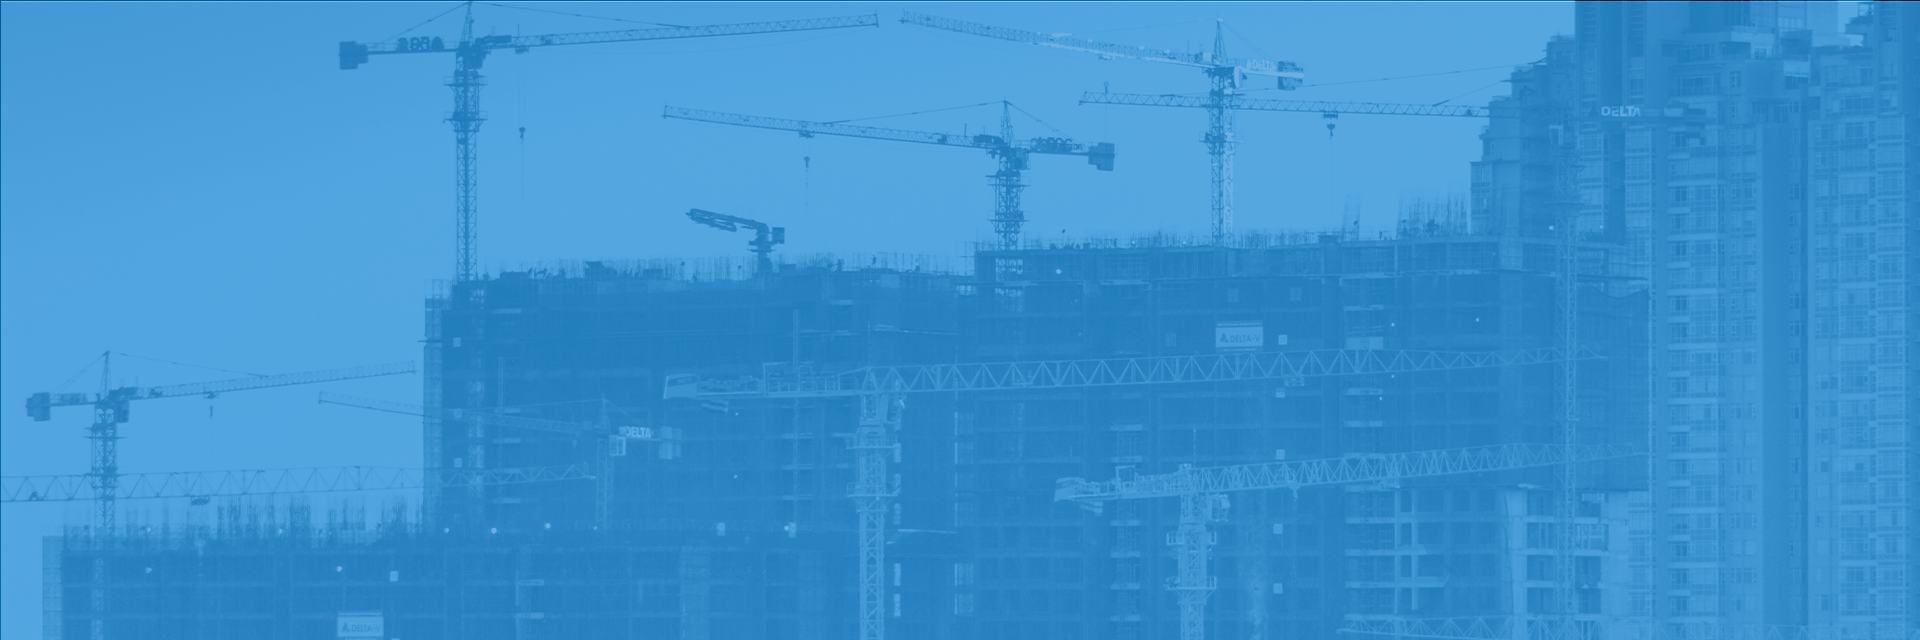 Complete Construction Cloud Solution for Contractors, Developers and Project Owners.